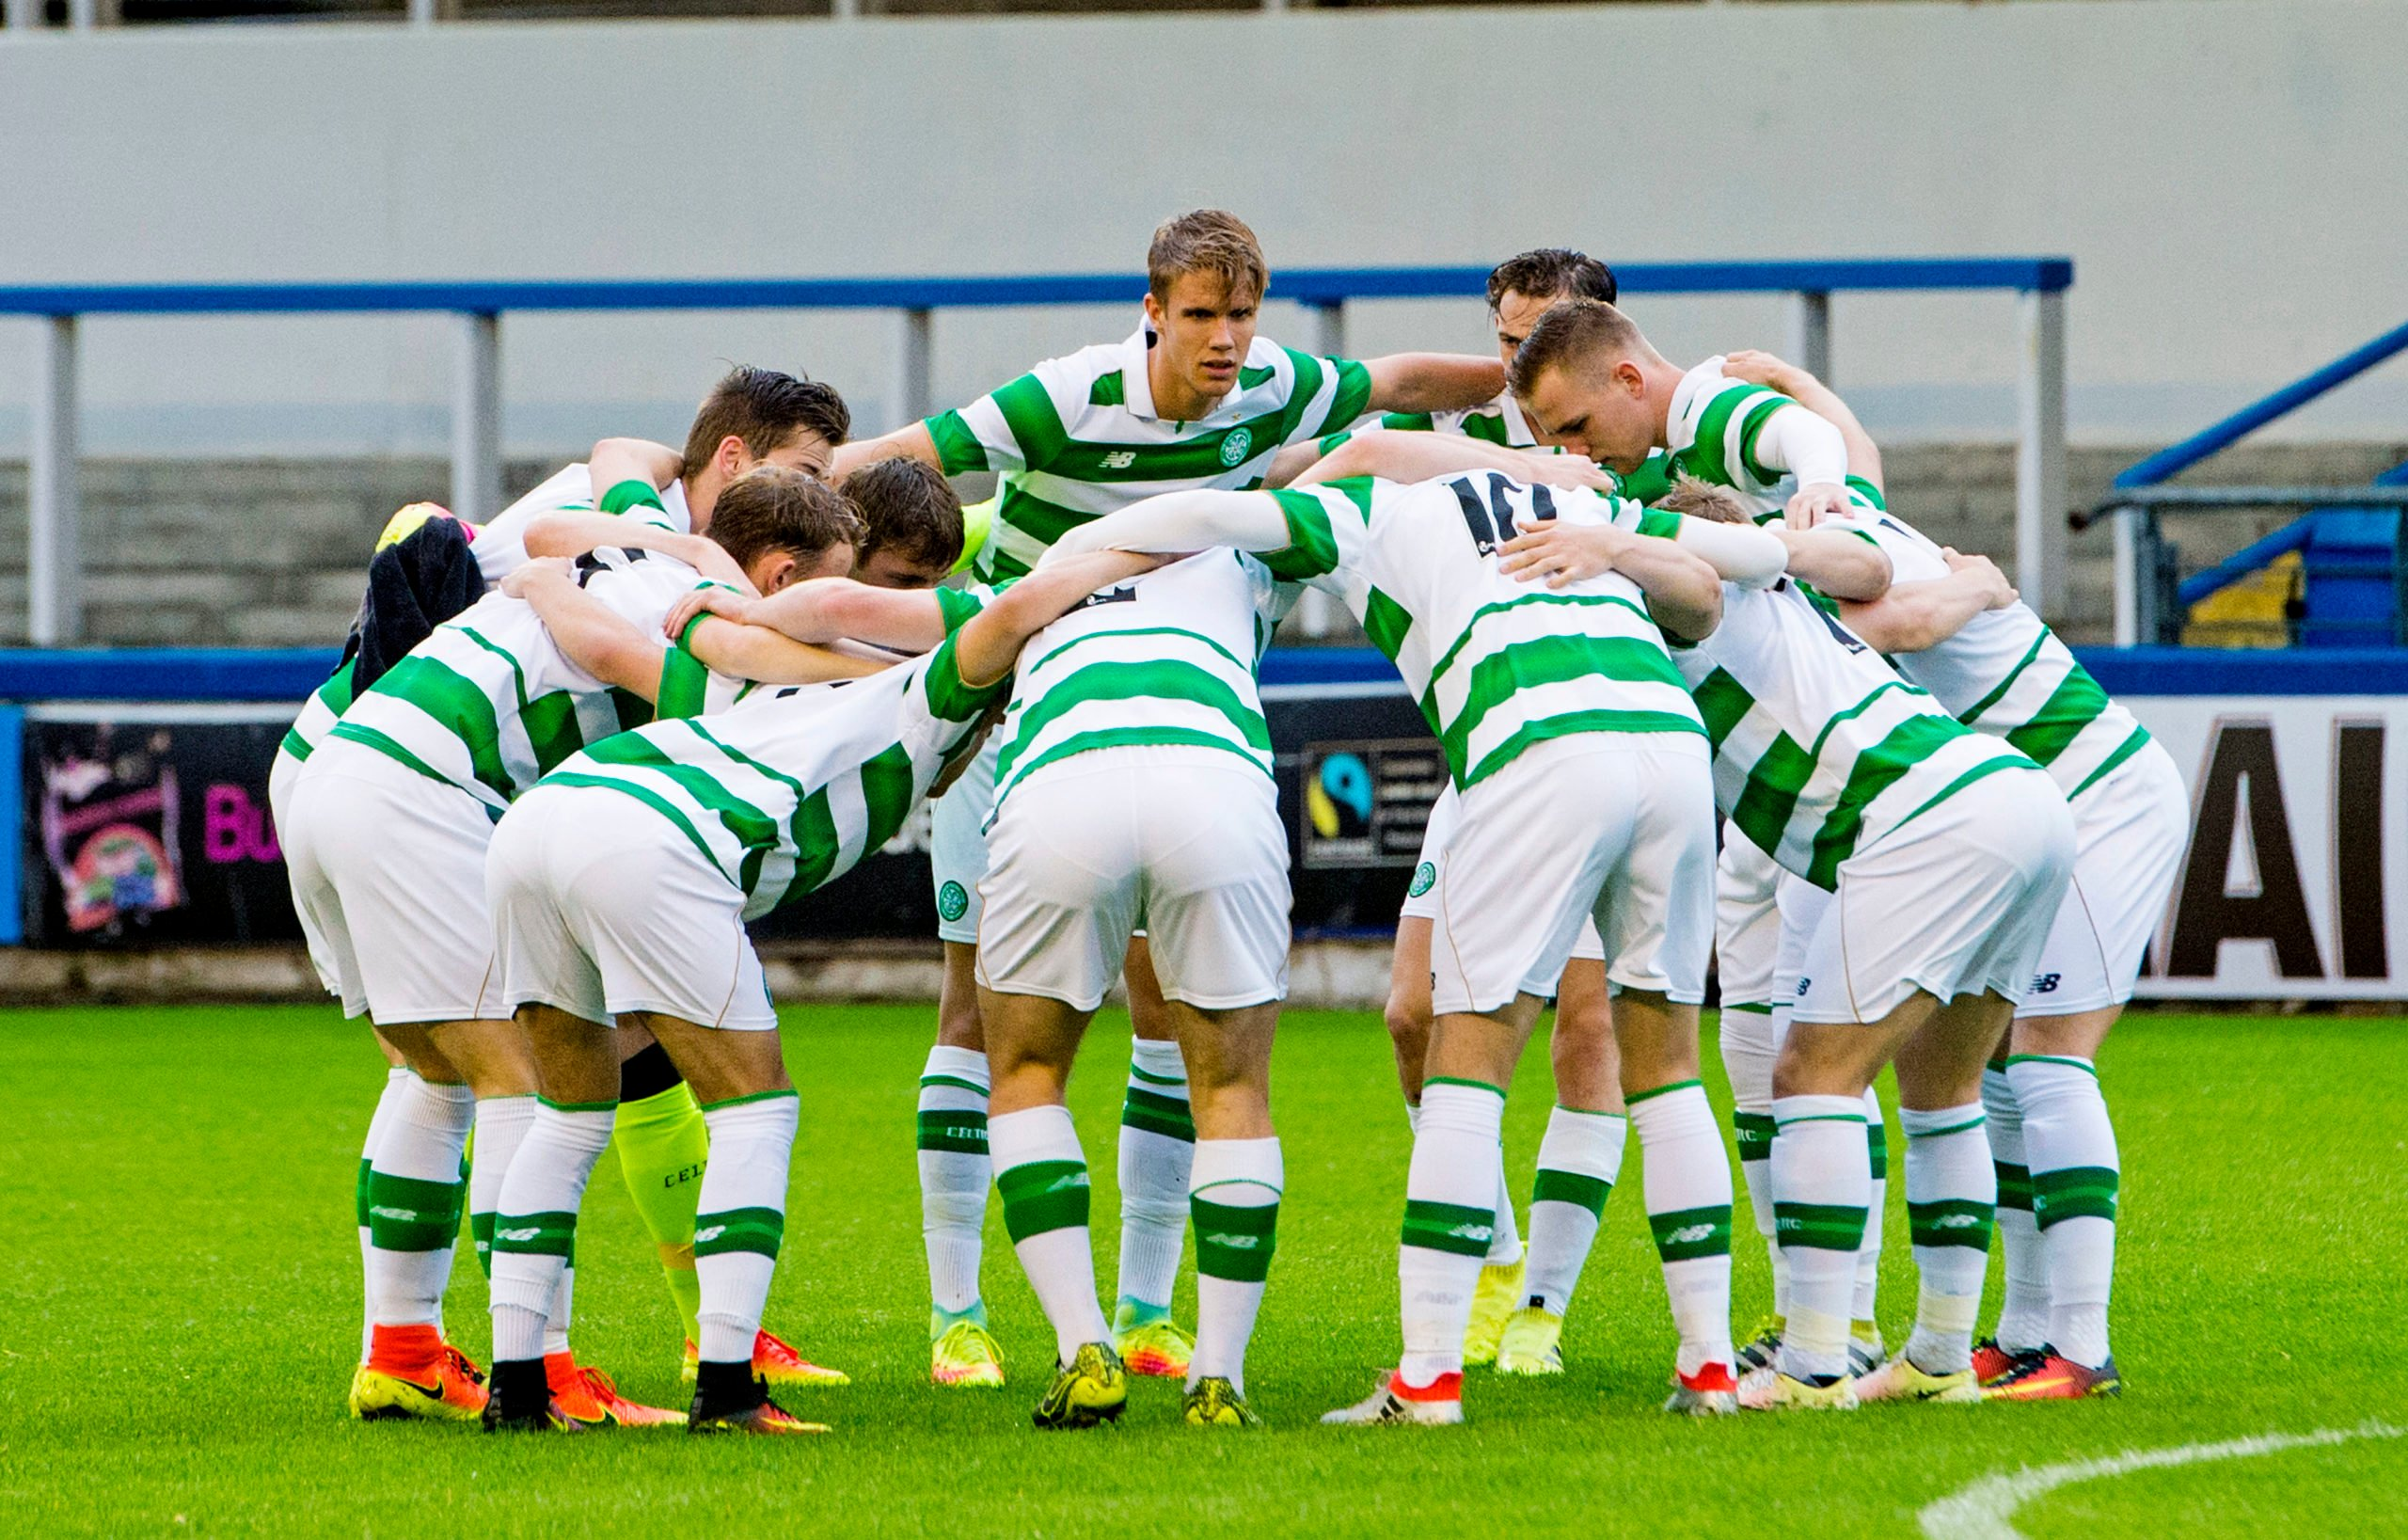 Celtic colts before a match against Manchester City